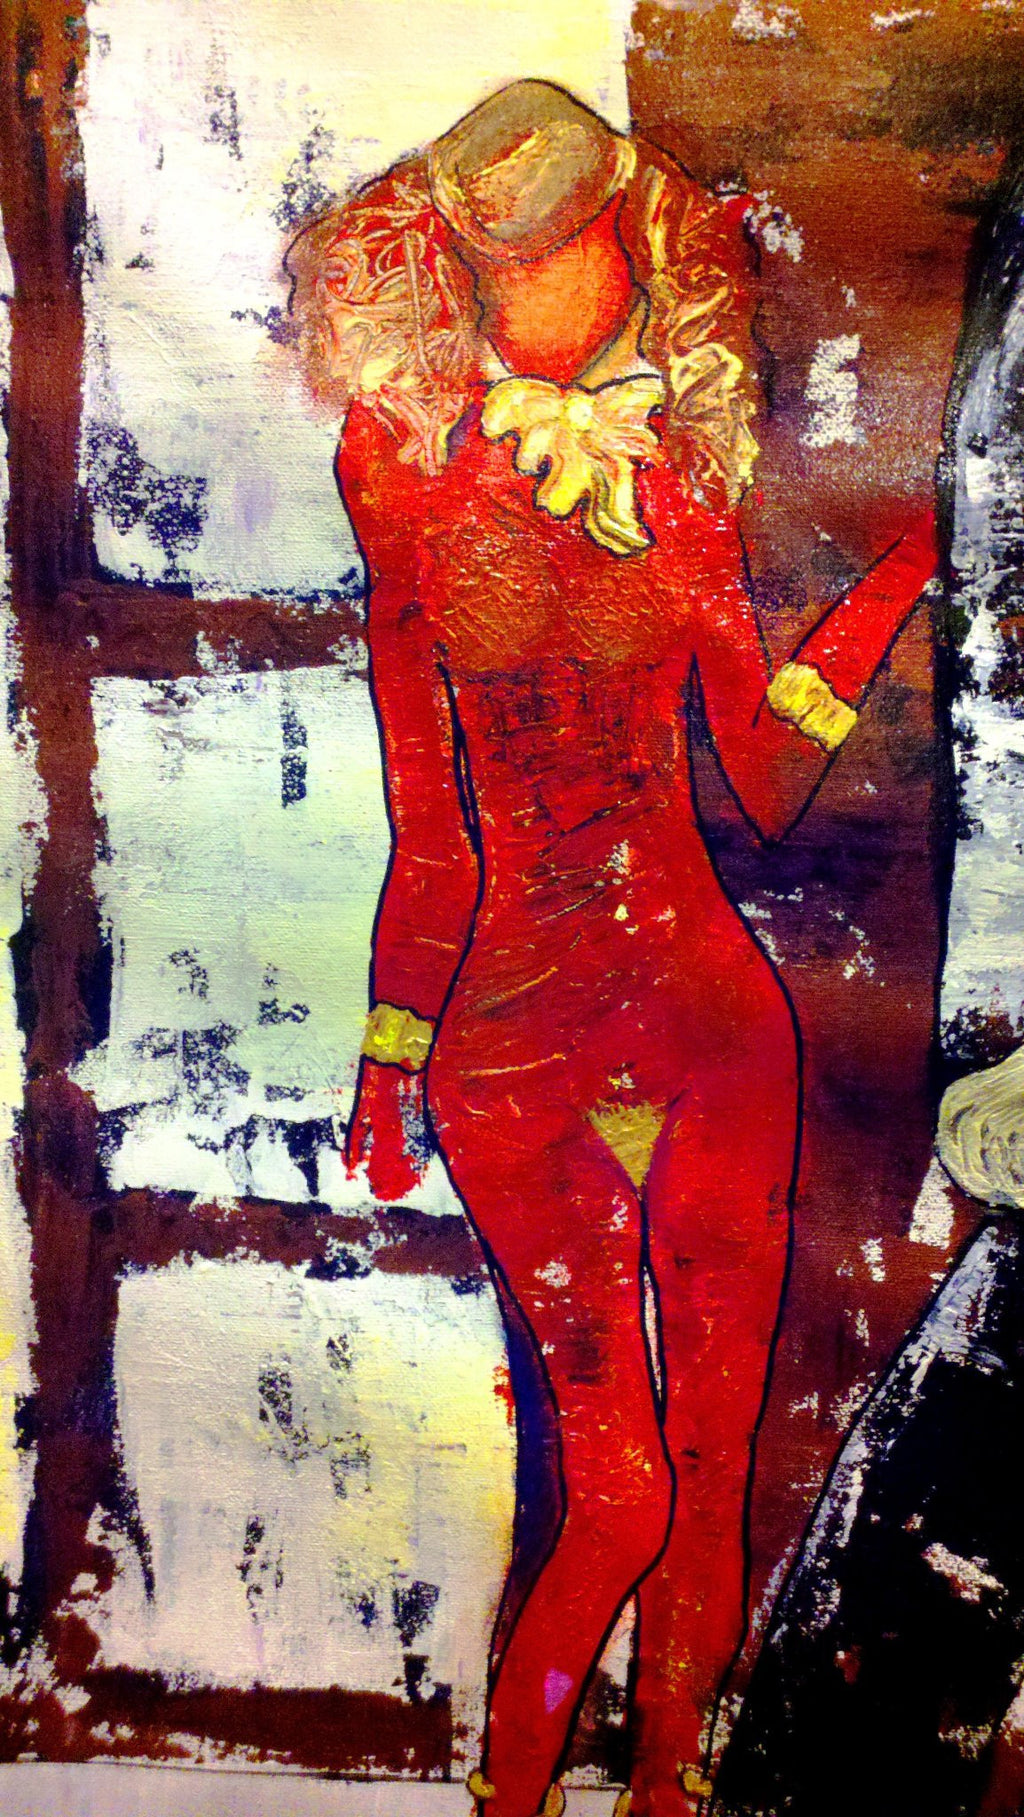 Detail of woman figure in I'm Over Here by Penelope Przekop